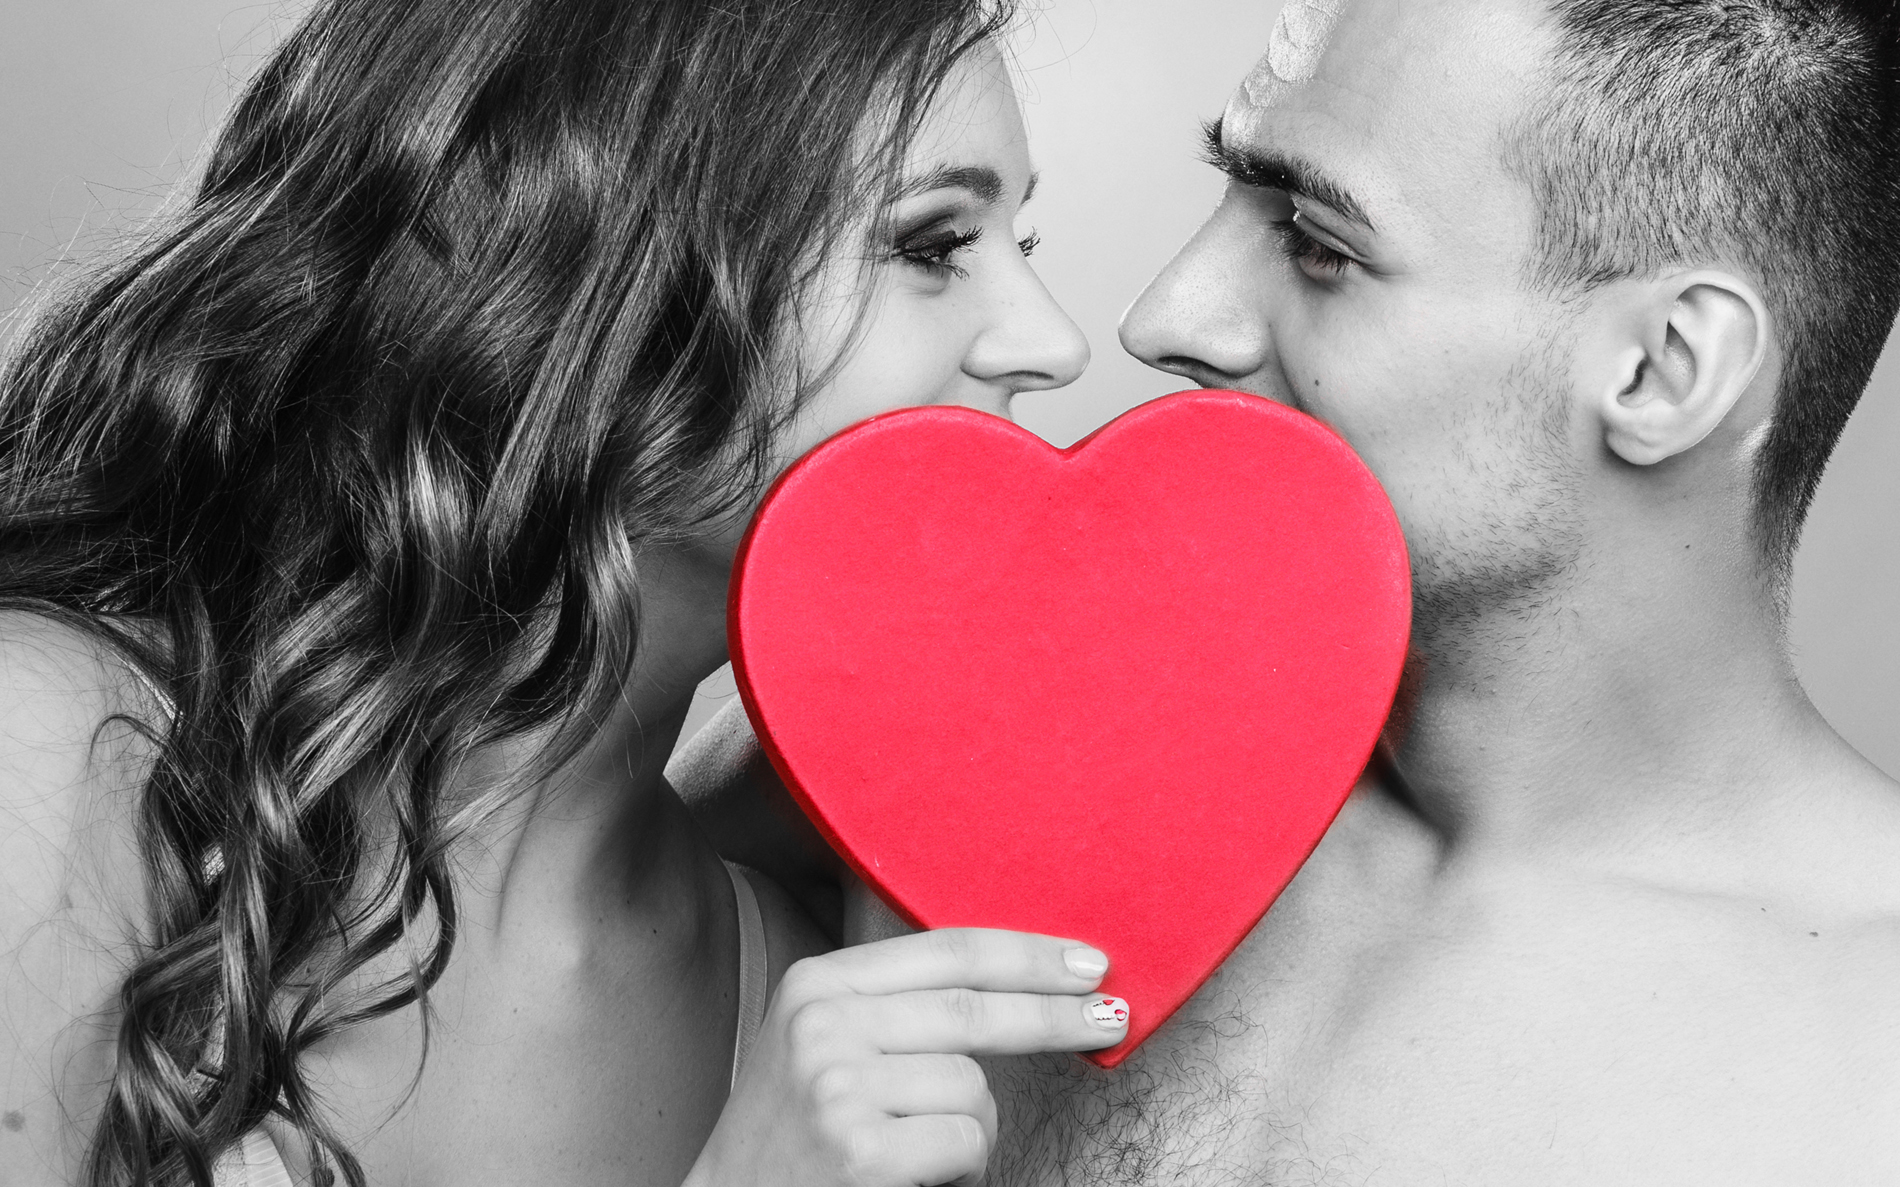 Holding a heart-shaped men and women couples 52603